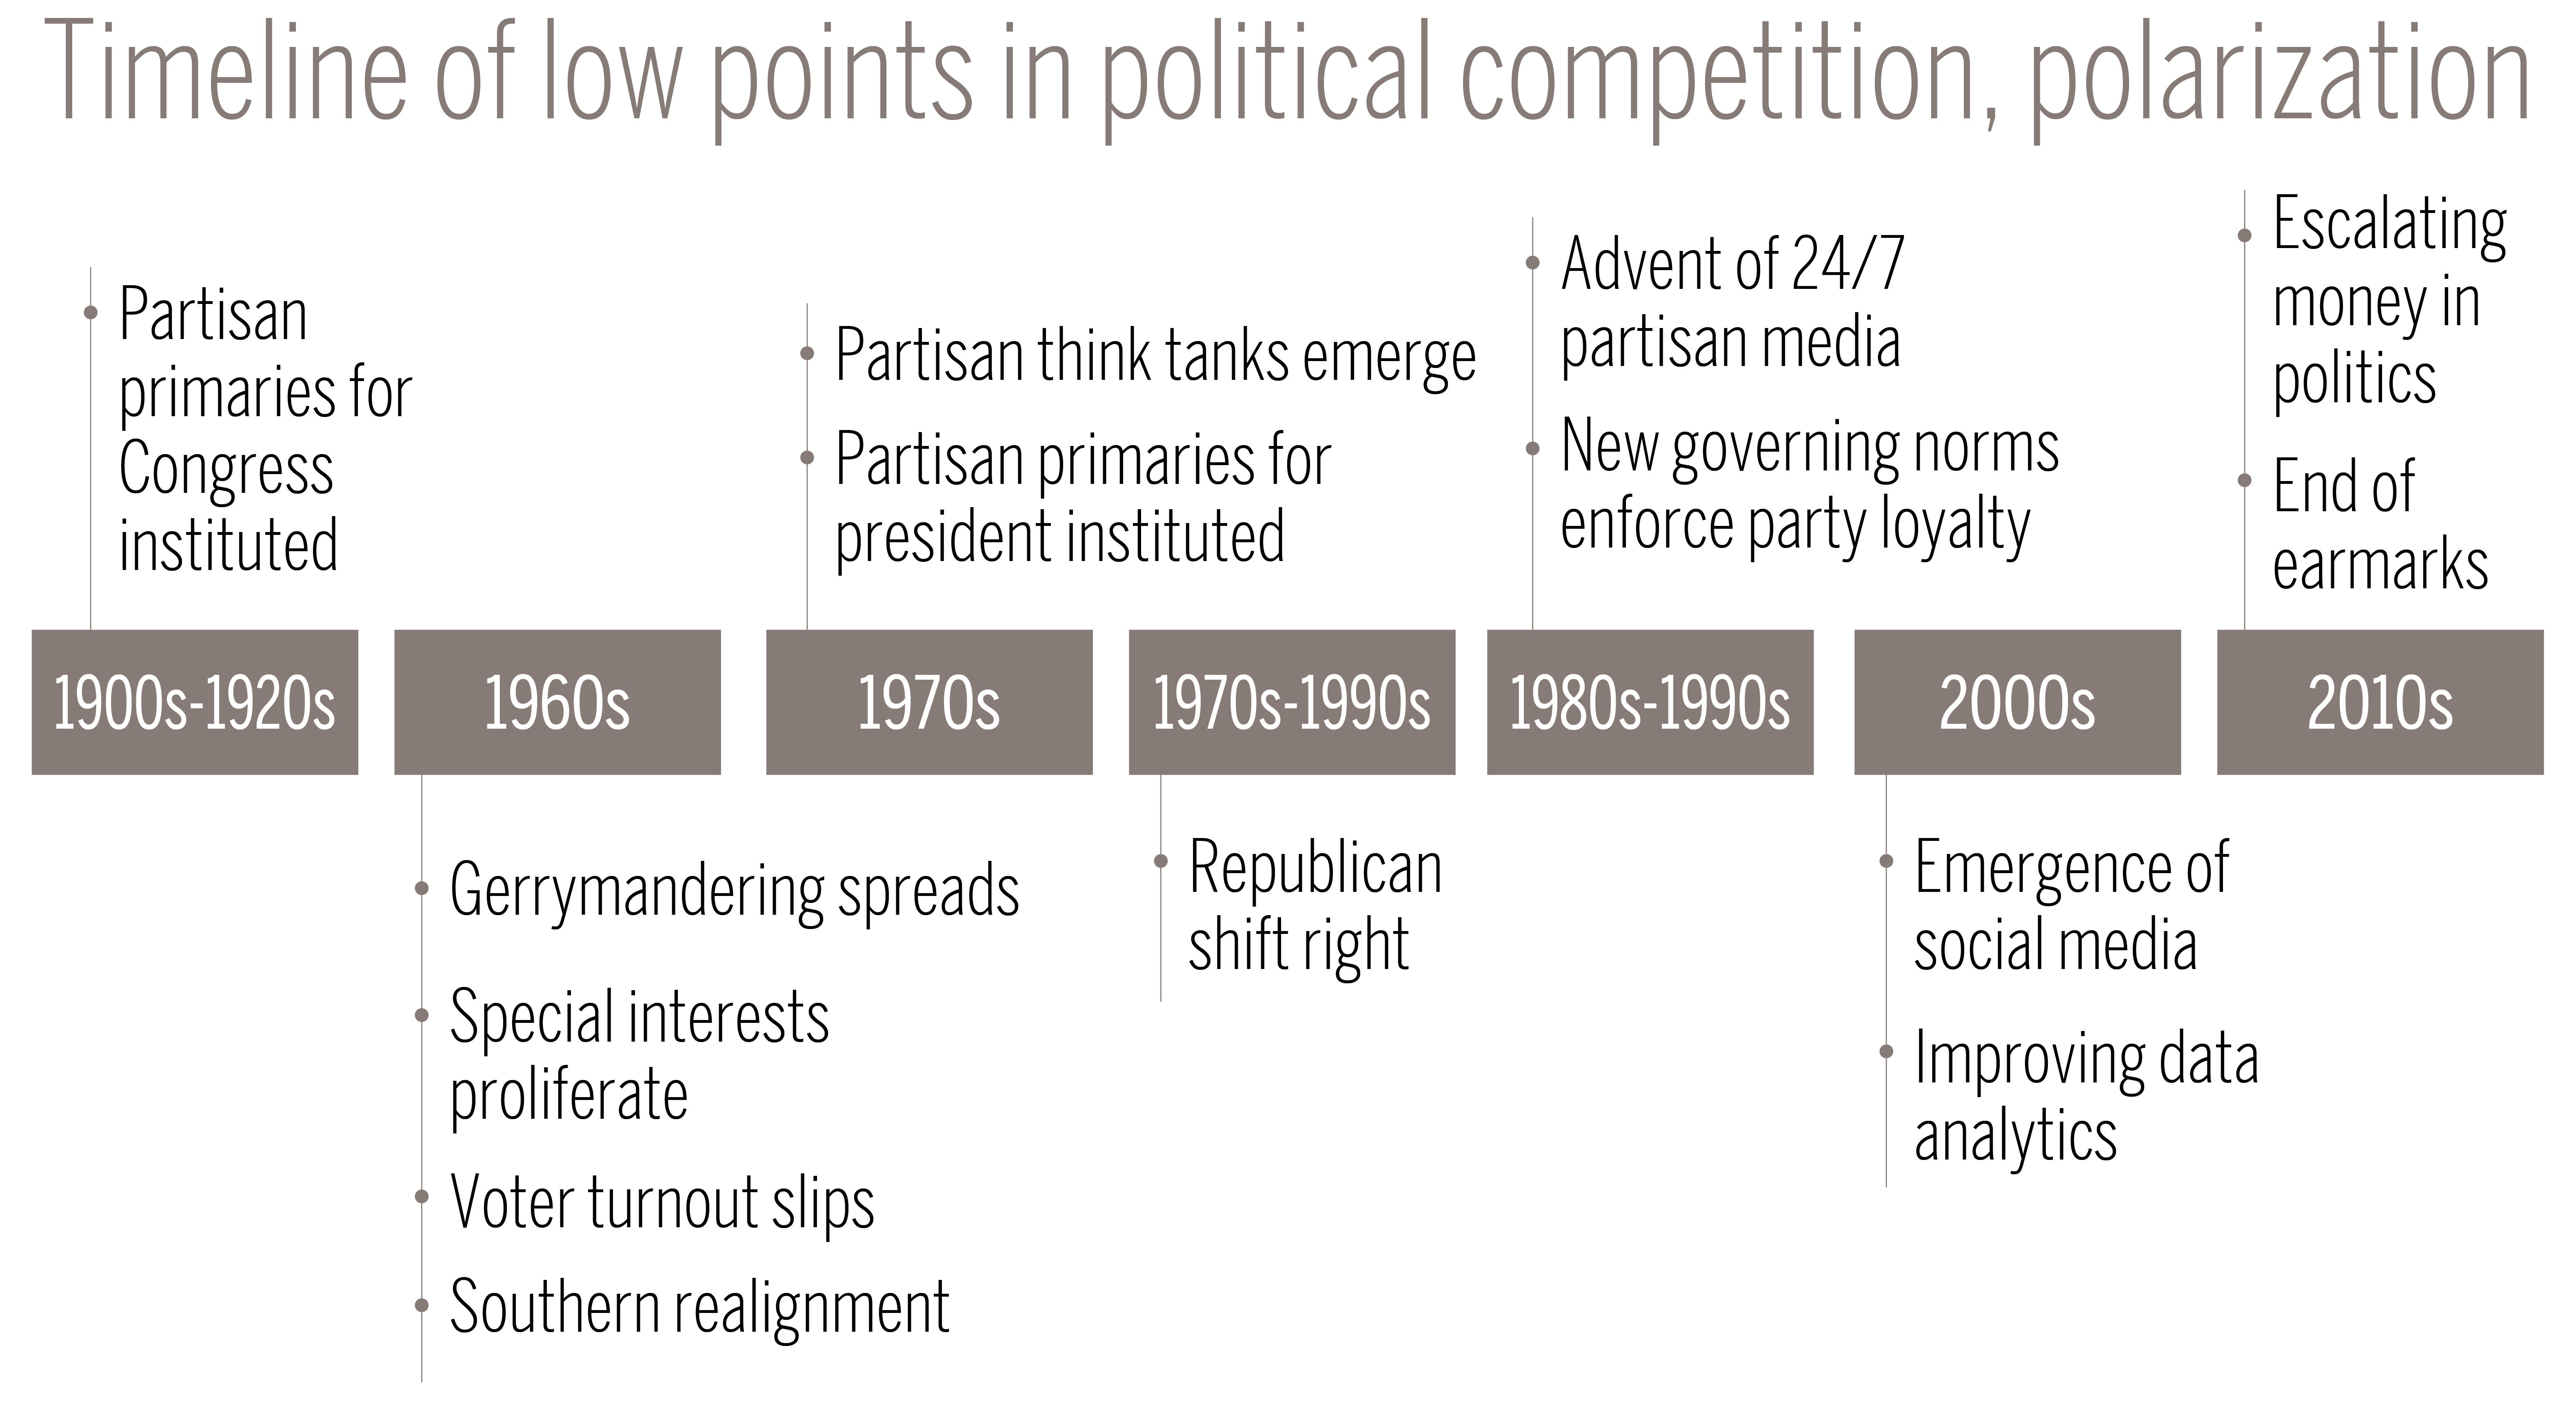 Timeline Of Low Points In Political Competition Polarization